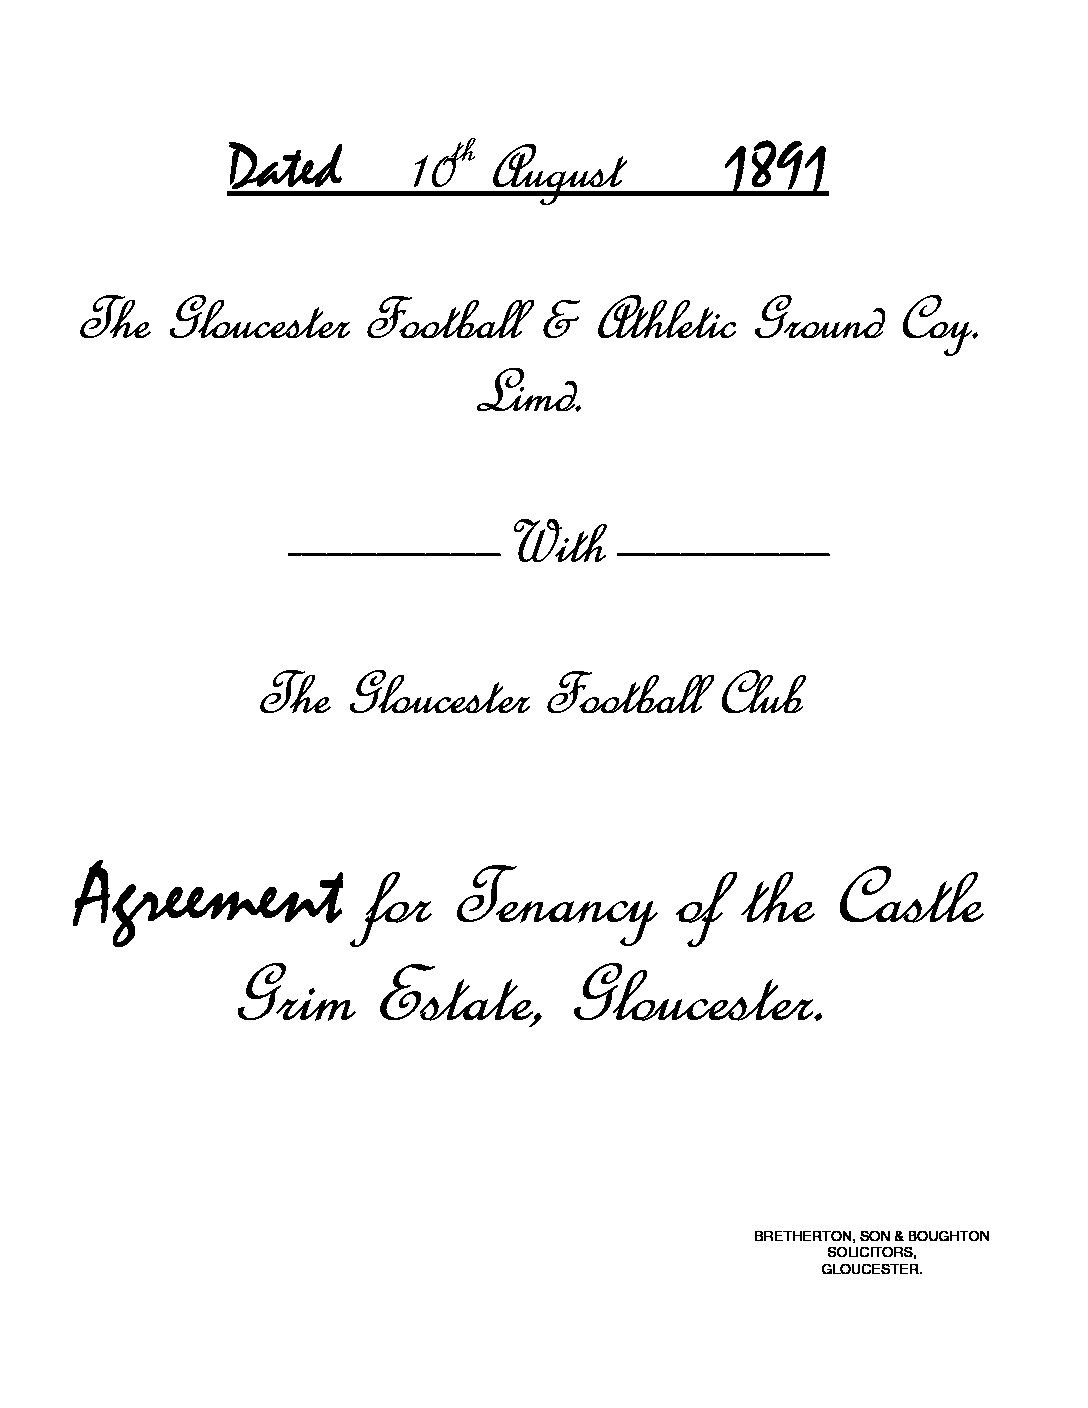 1891: Agreement for the Tenancy of the Castle Grim estate